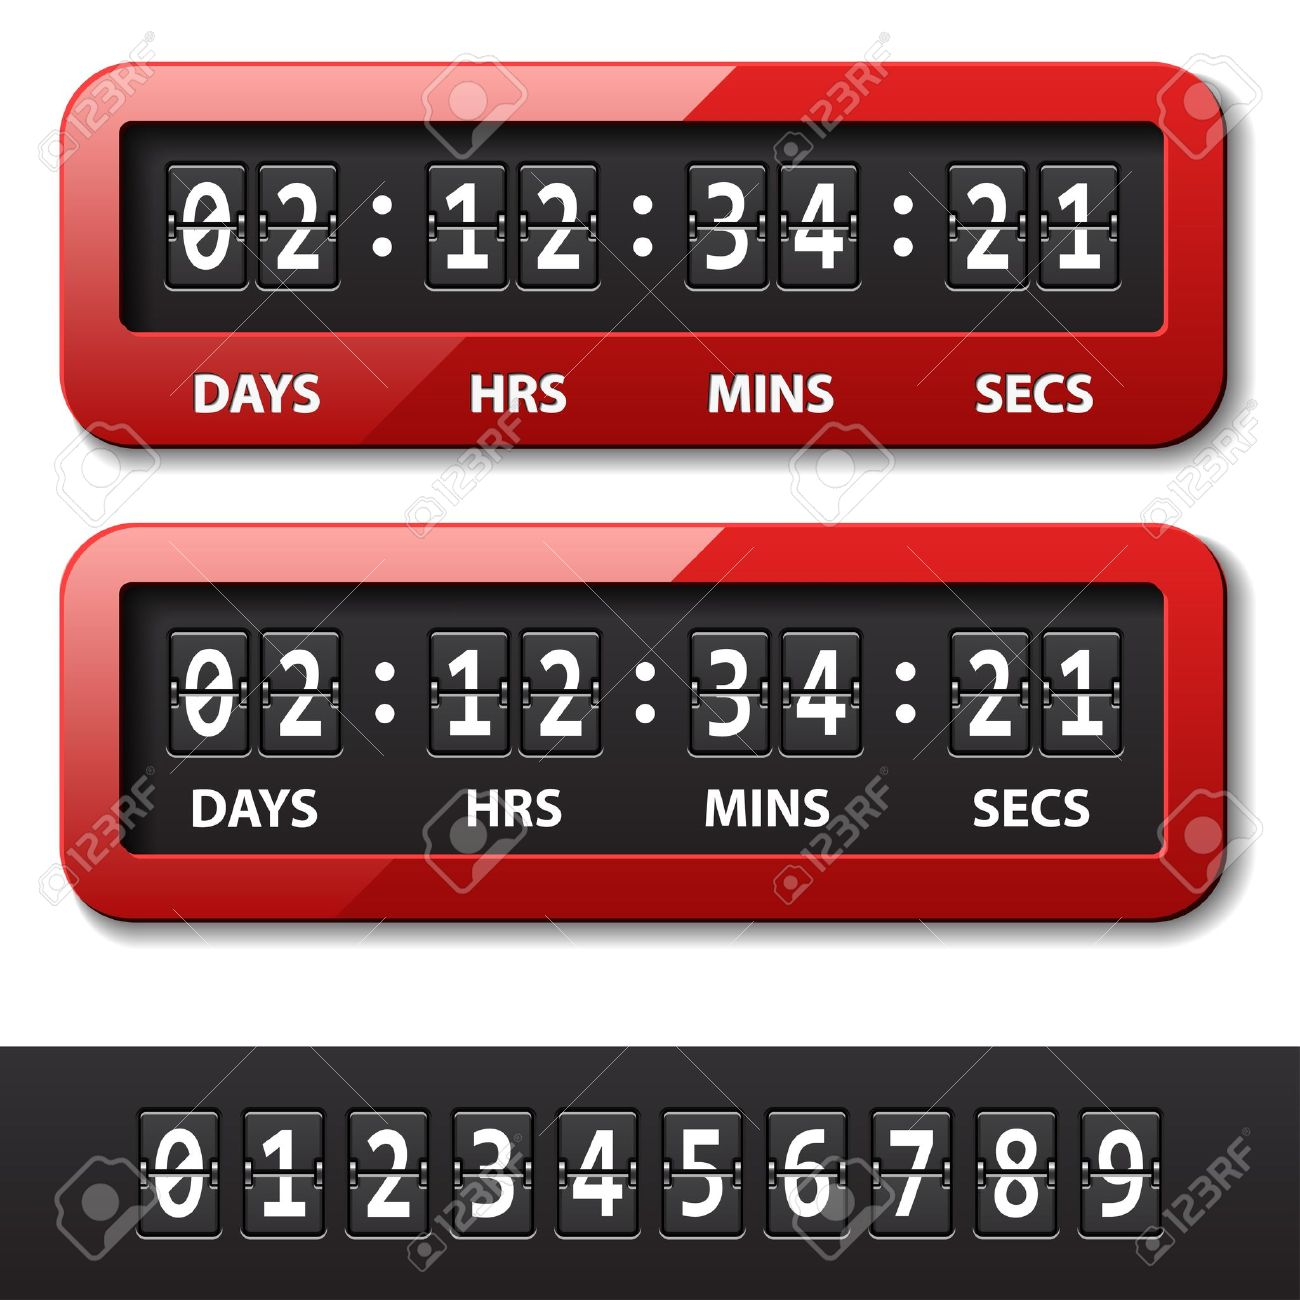 Countdown timer clipart. Vector red mechanical counter